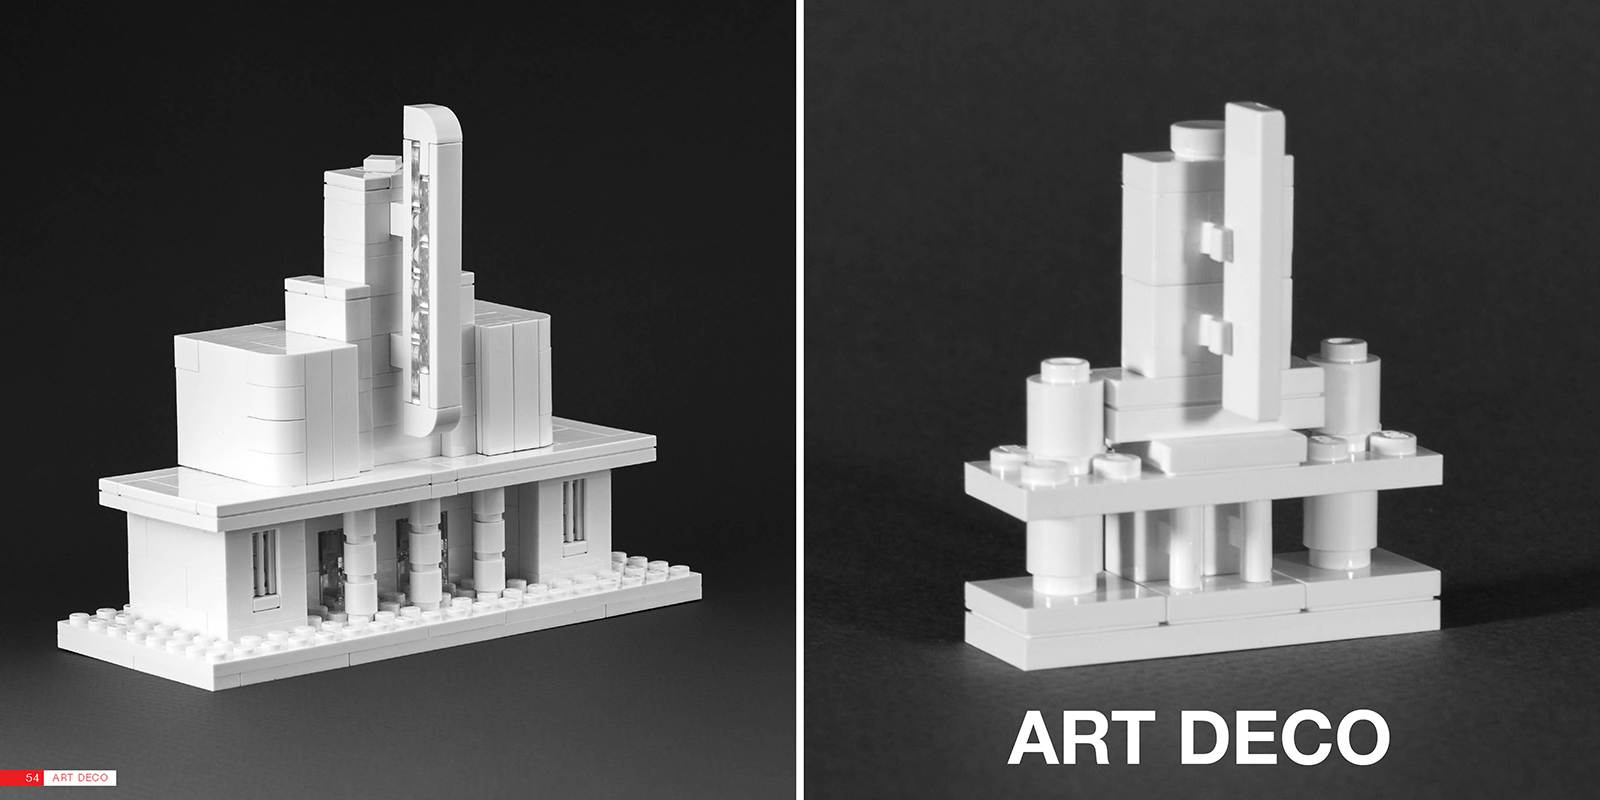 Nanoscale Models Of THE LEGO ARCHITECT BRICK